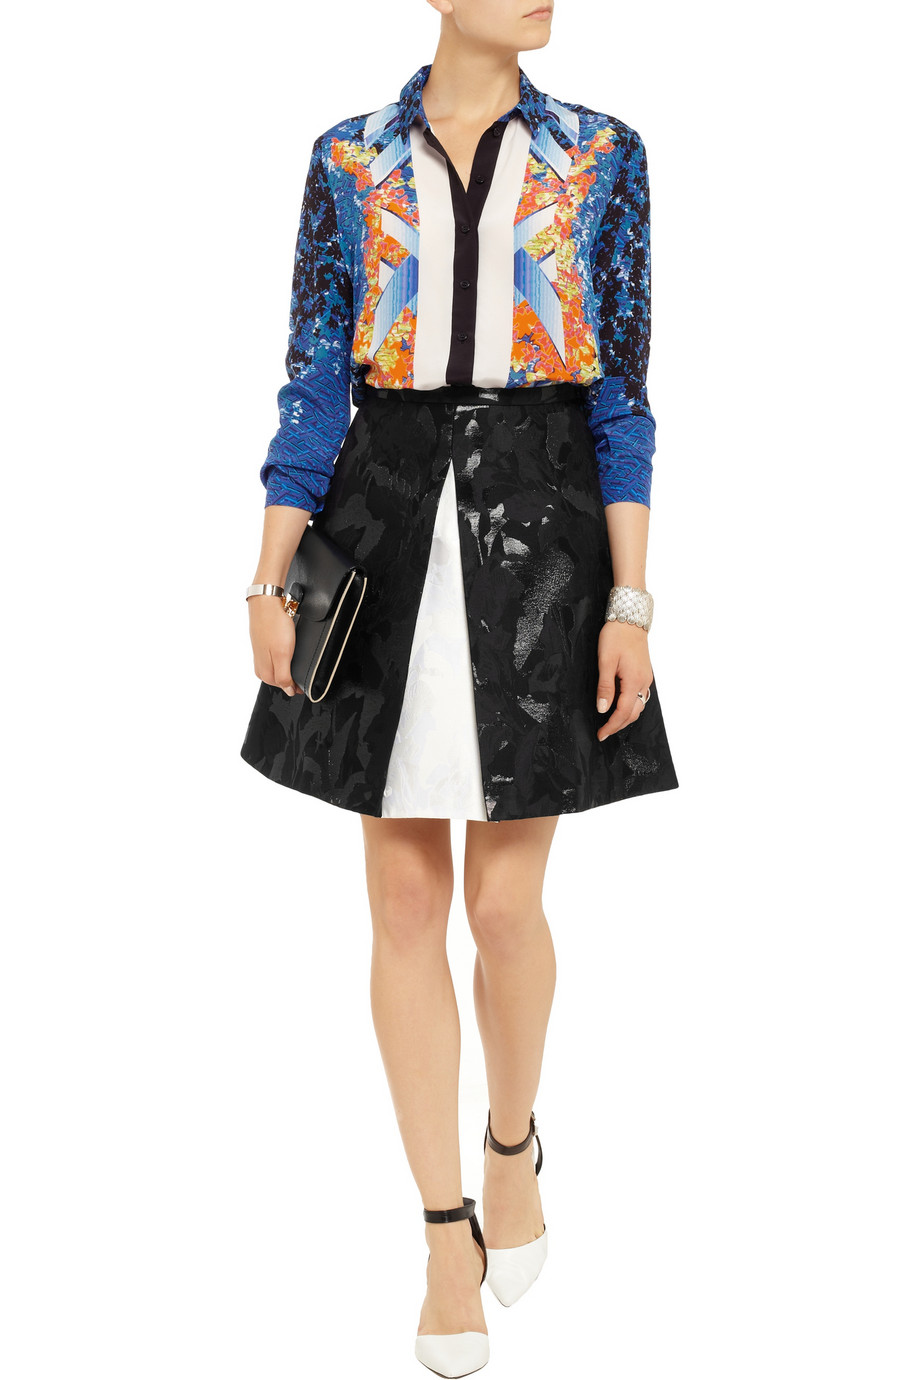 Peter pilotto arrow printed silk shirt – 70% at the outnet.com